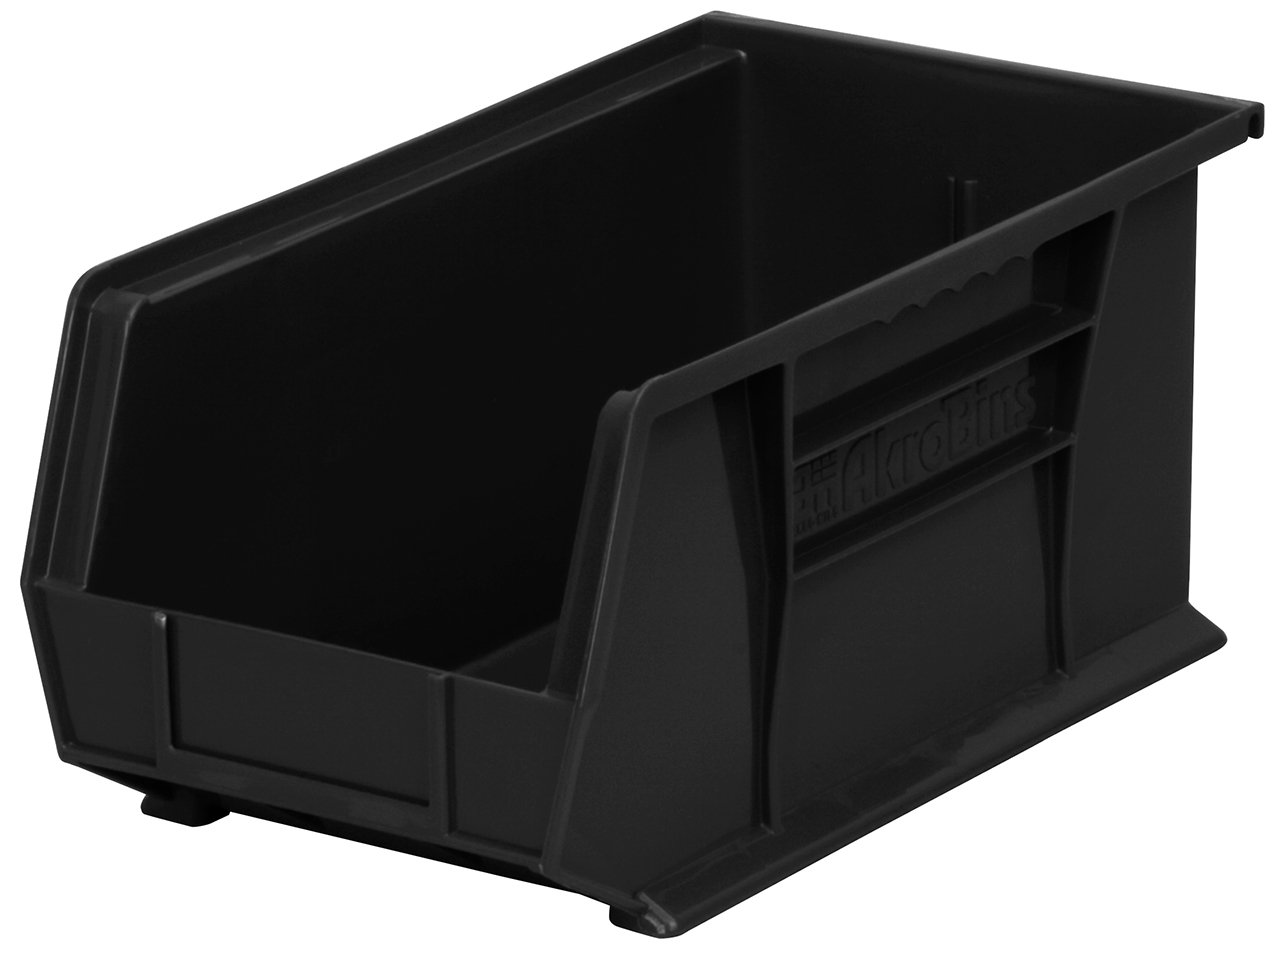 Akro-Mils 30240 Plastic Storage Stacking Hanging Akro Bin, 15-Inch by 8-Inch by 7-Inch, Black, Case of 12